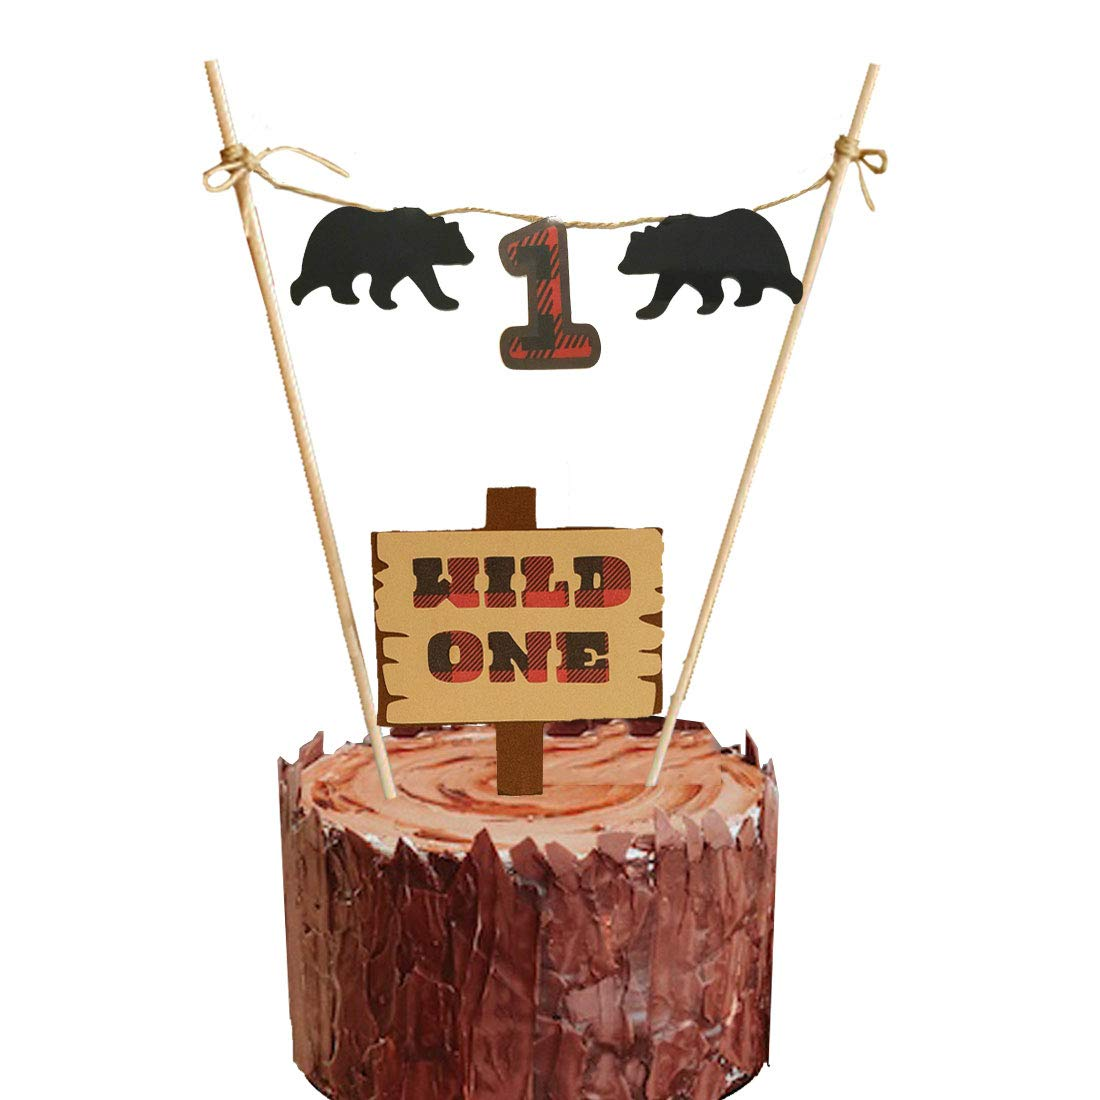 lumberjack first birthday wild one cake topper party supplies decorations christmas buffalo plaid camping wild bear 1st birthday party high chair baby